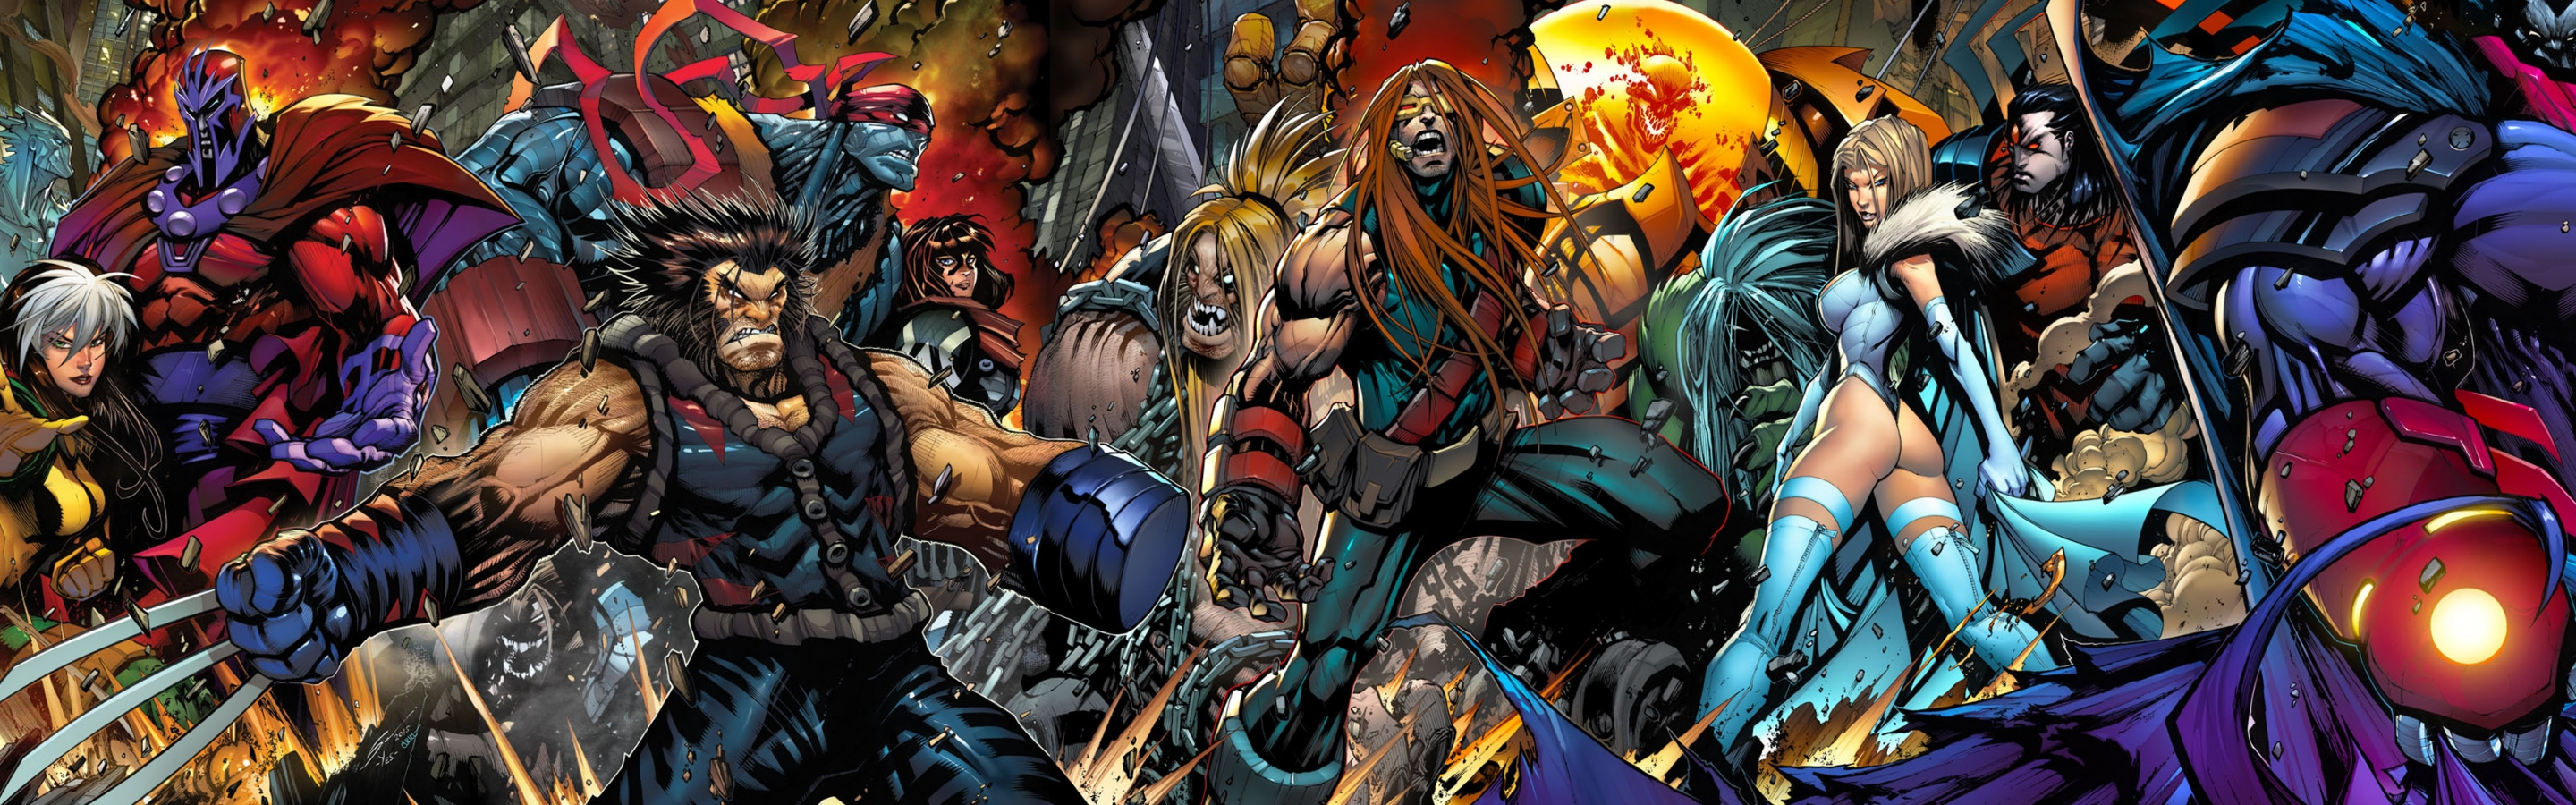 X-Men: Age of Apocalypse